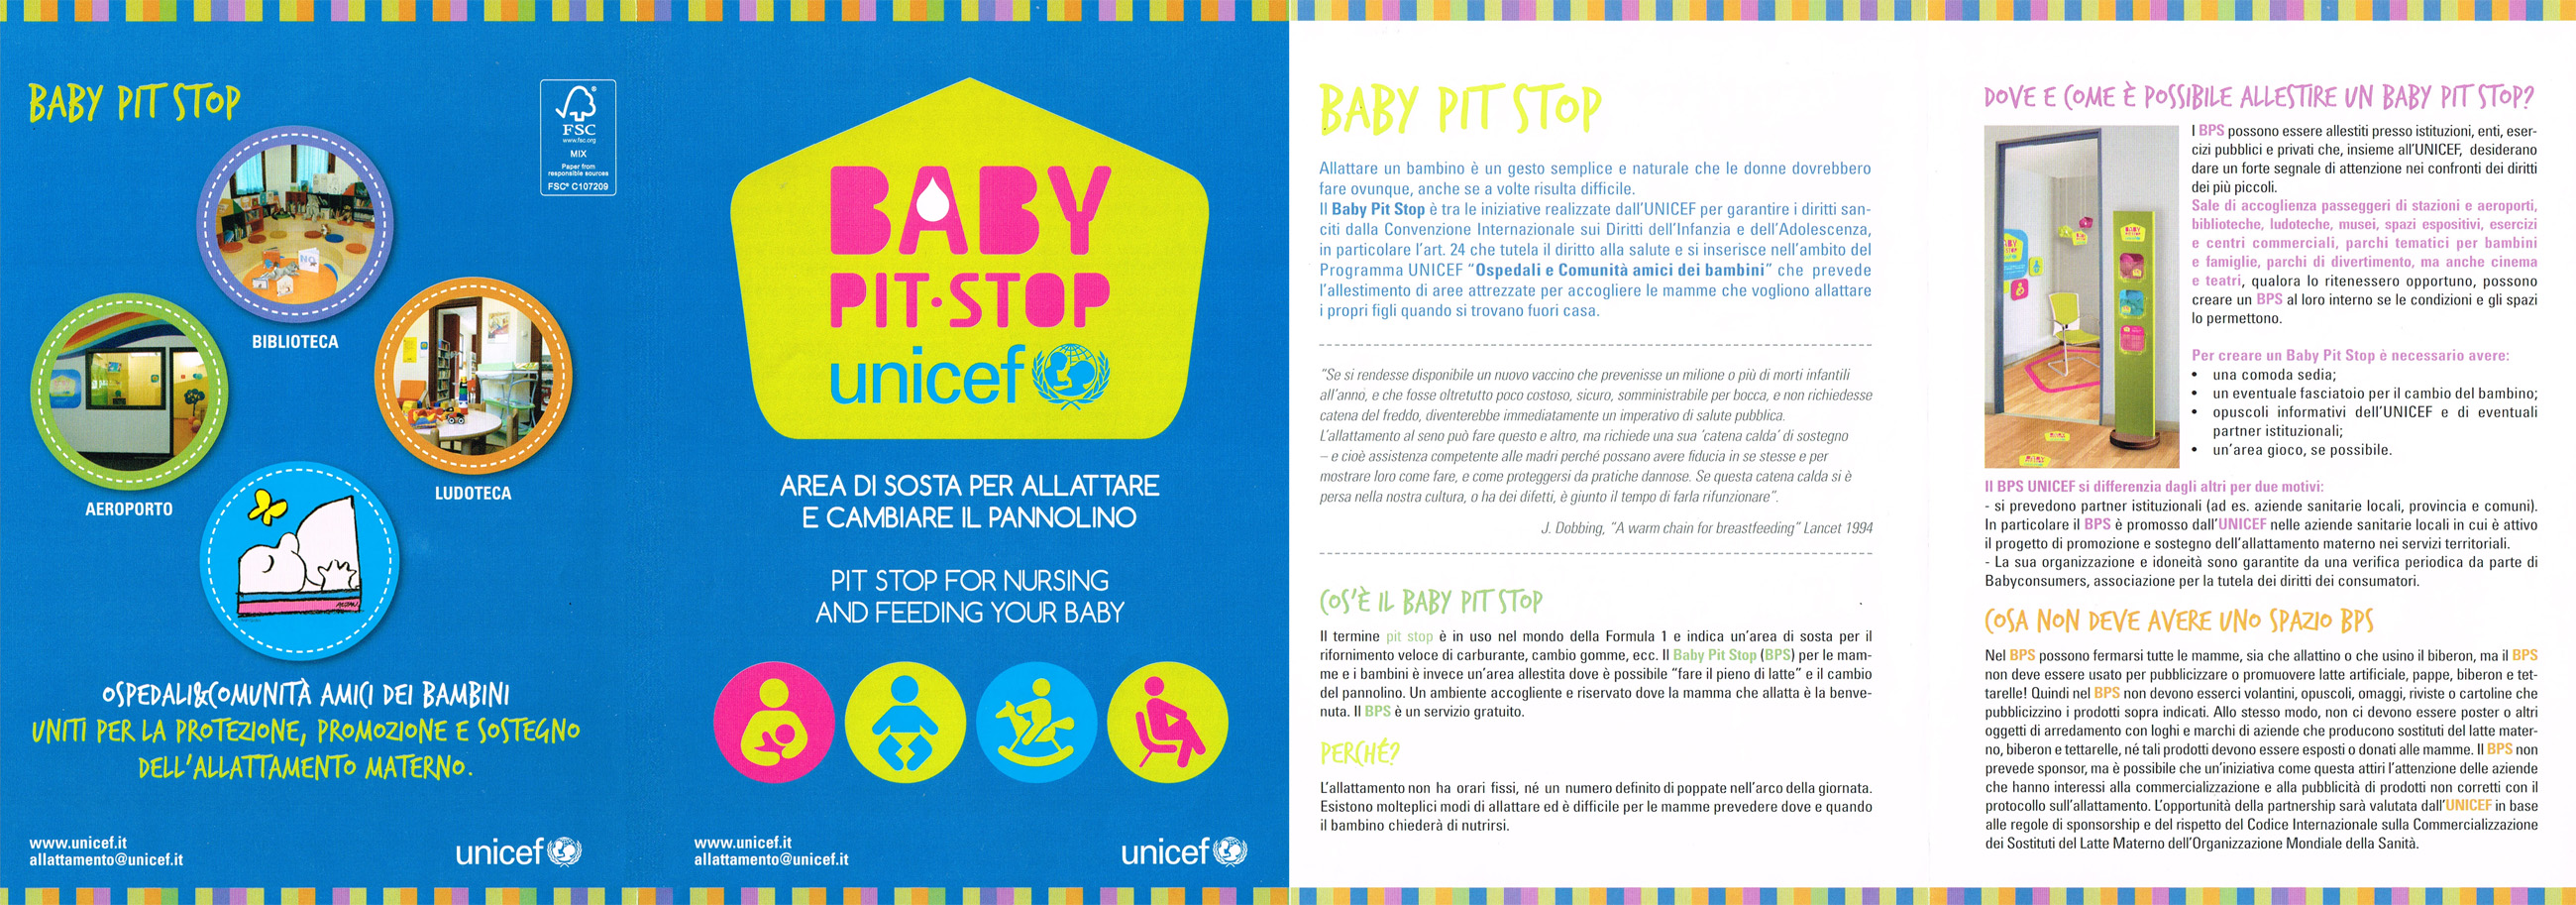 baby-pit-stop-unicef